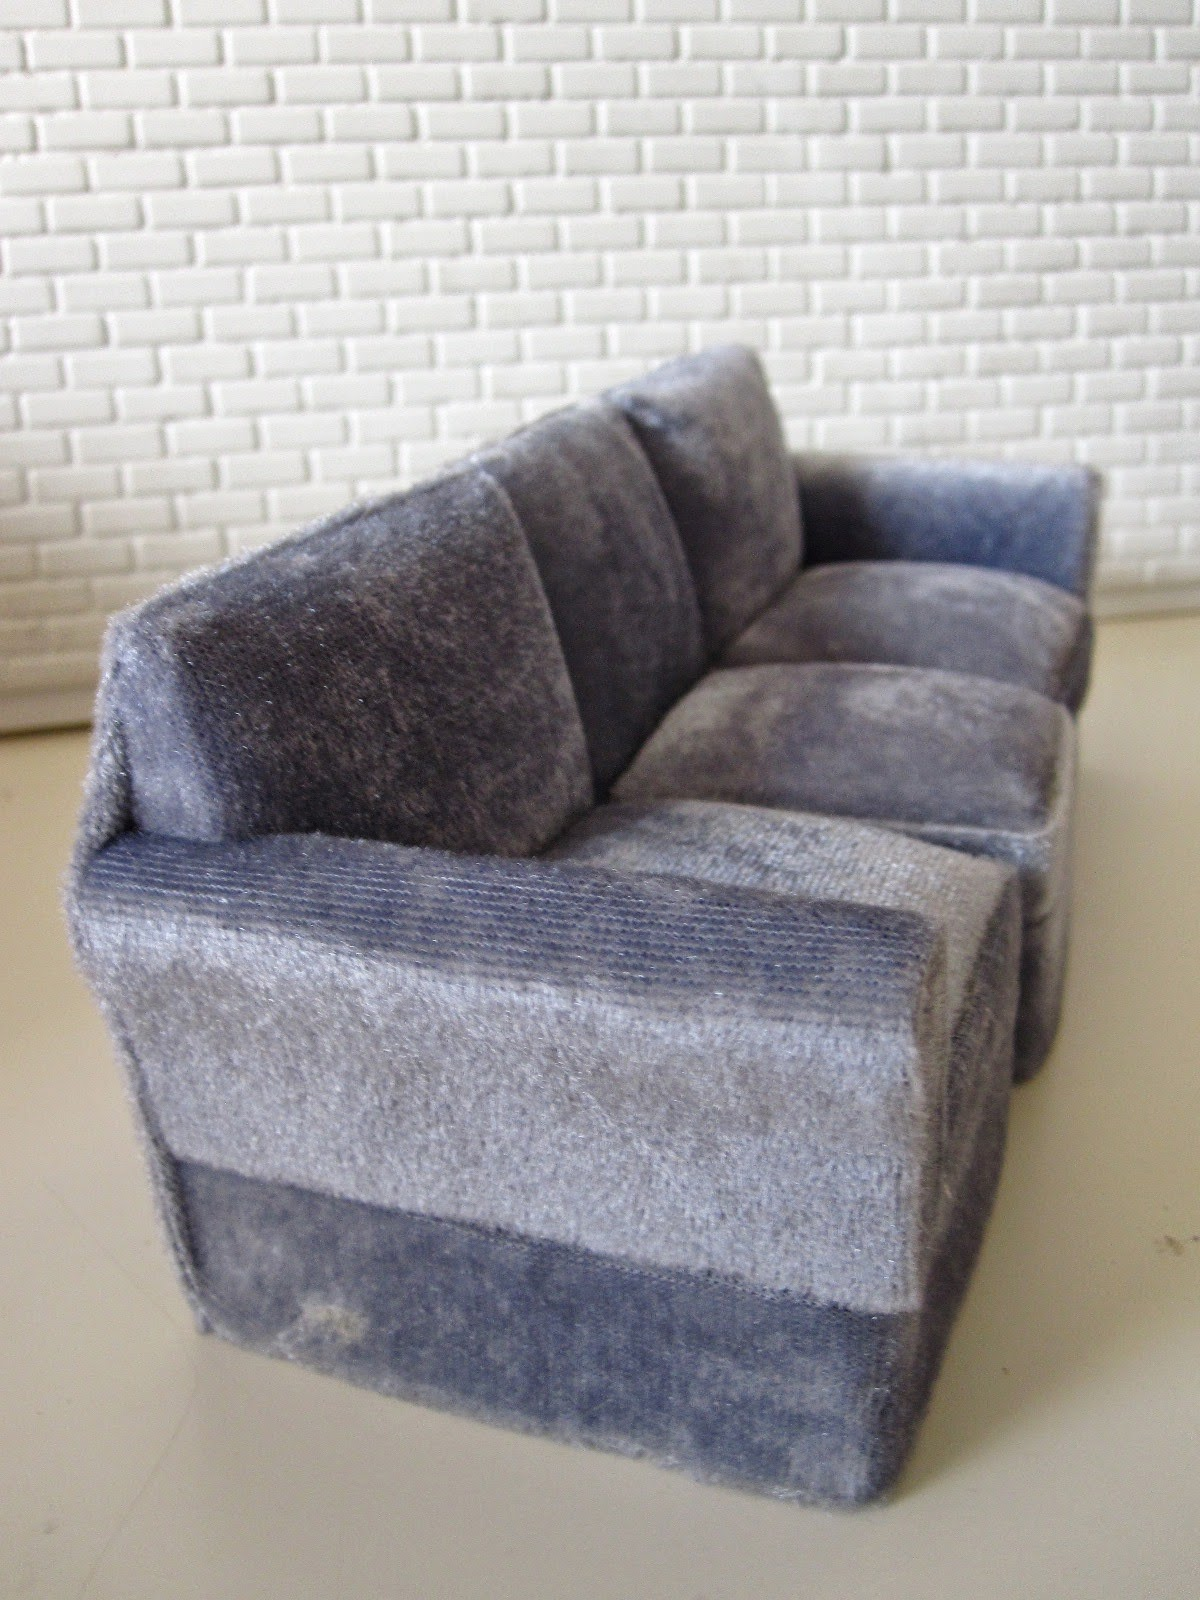 Modern miniature three seater grey velvet sofa.